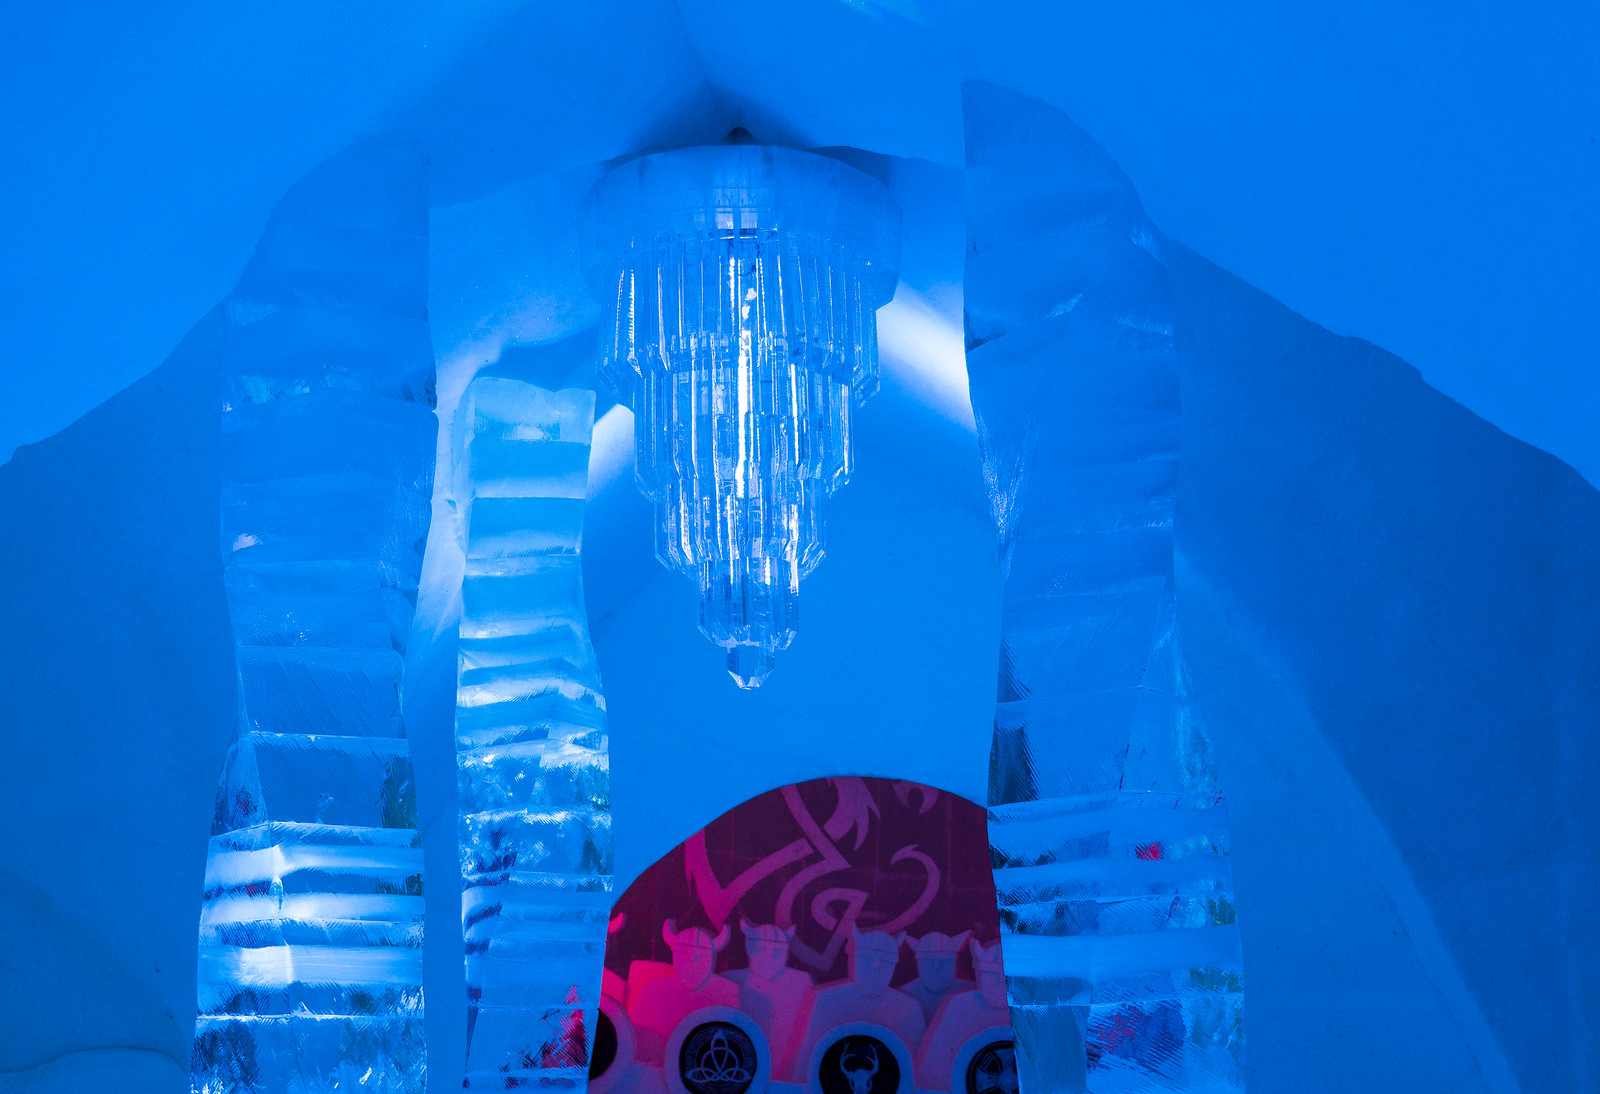 Ice Hotel Quebec: An Insider's Guide to Surviving the Night - Ice chandelier